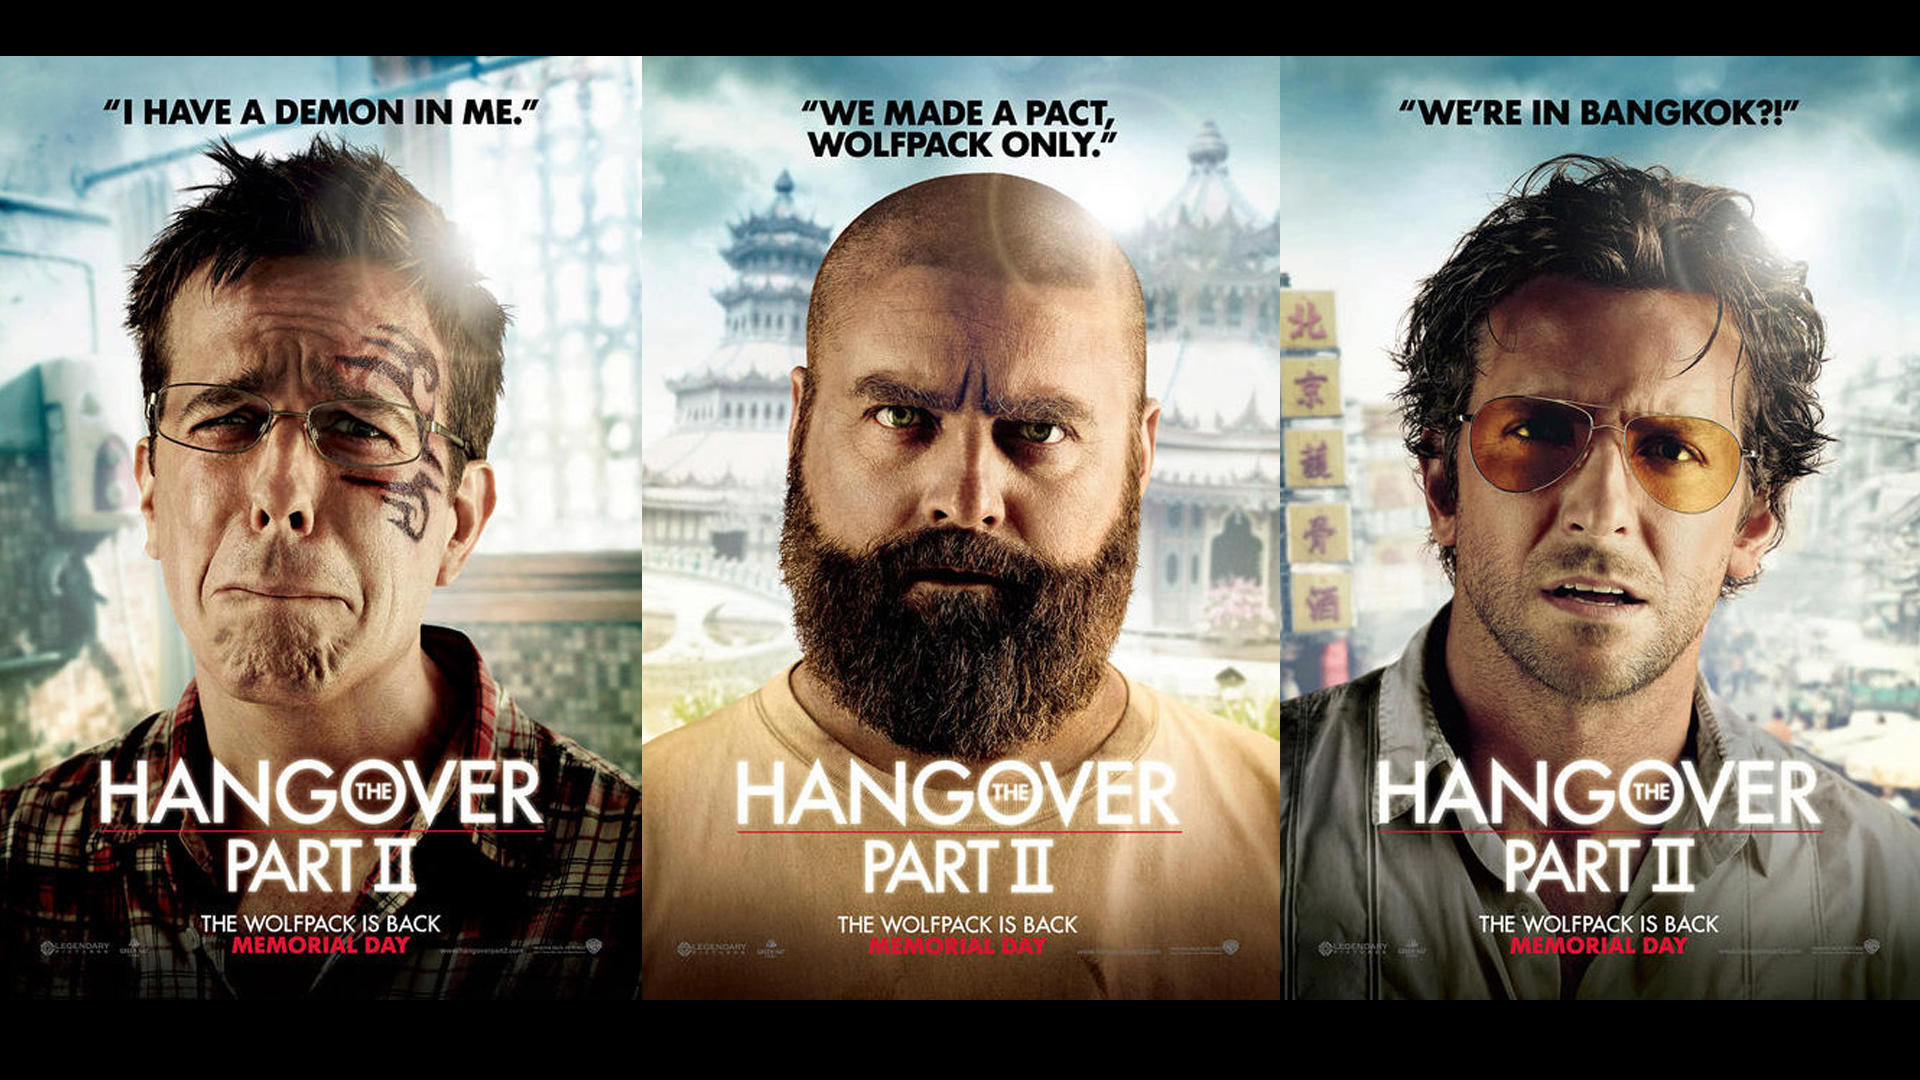 Hangover Images (27044726) Free Download by Alice Becher